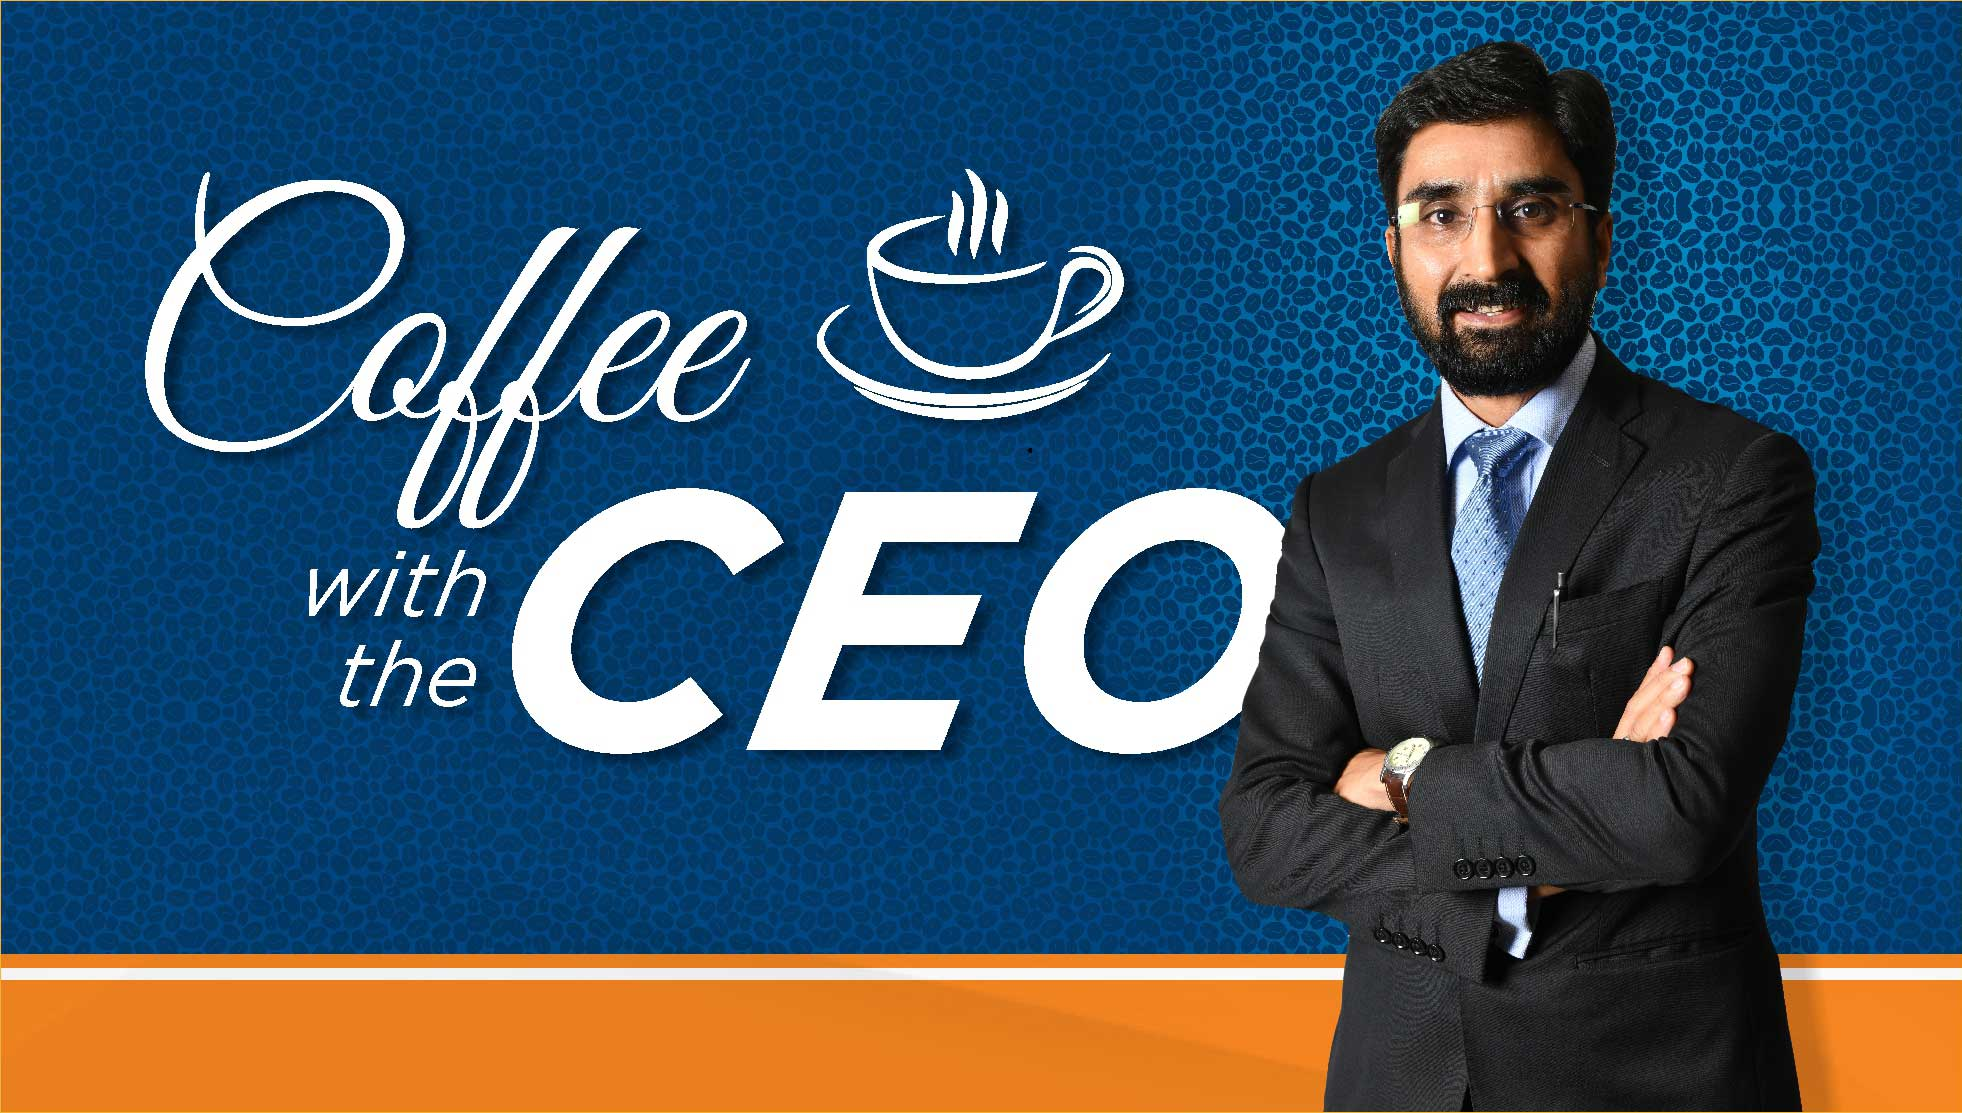 Coffee with the CEO